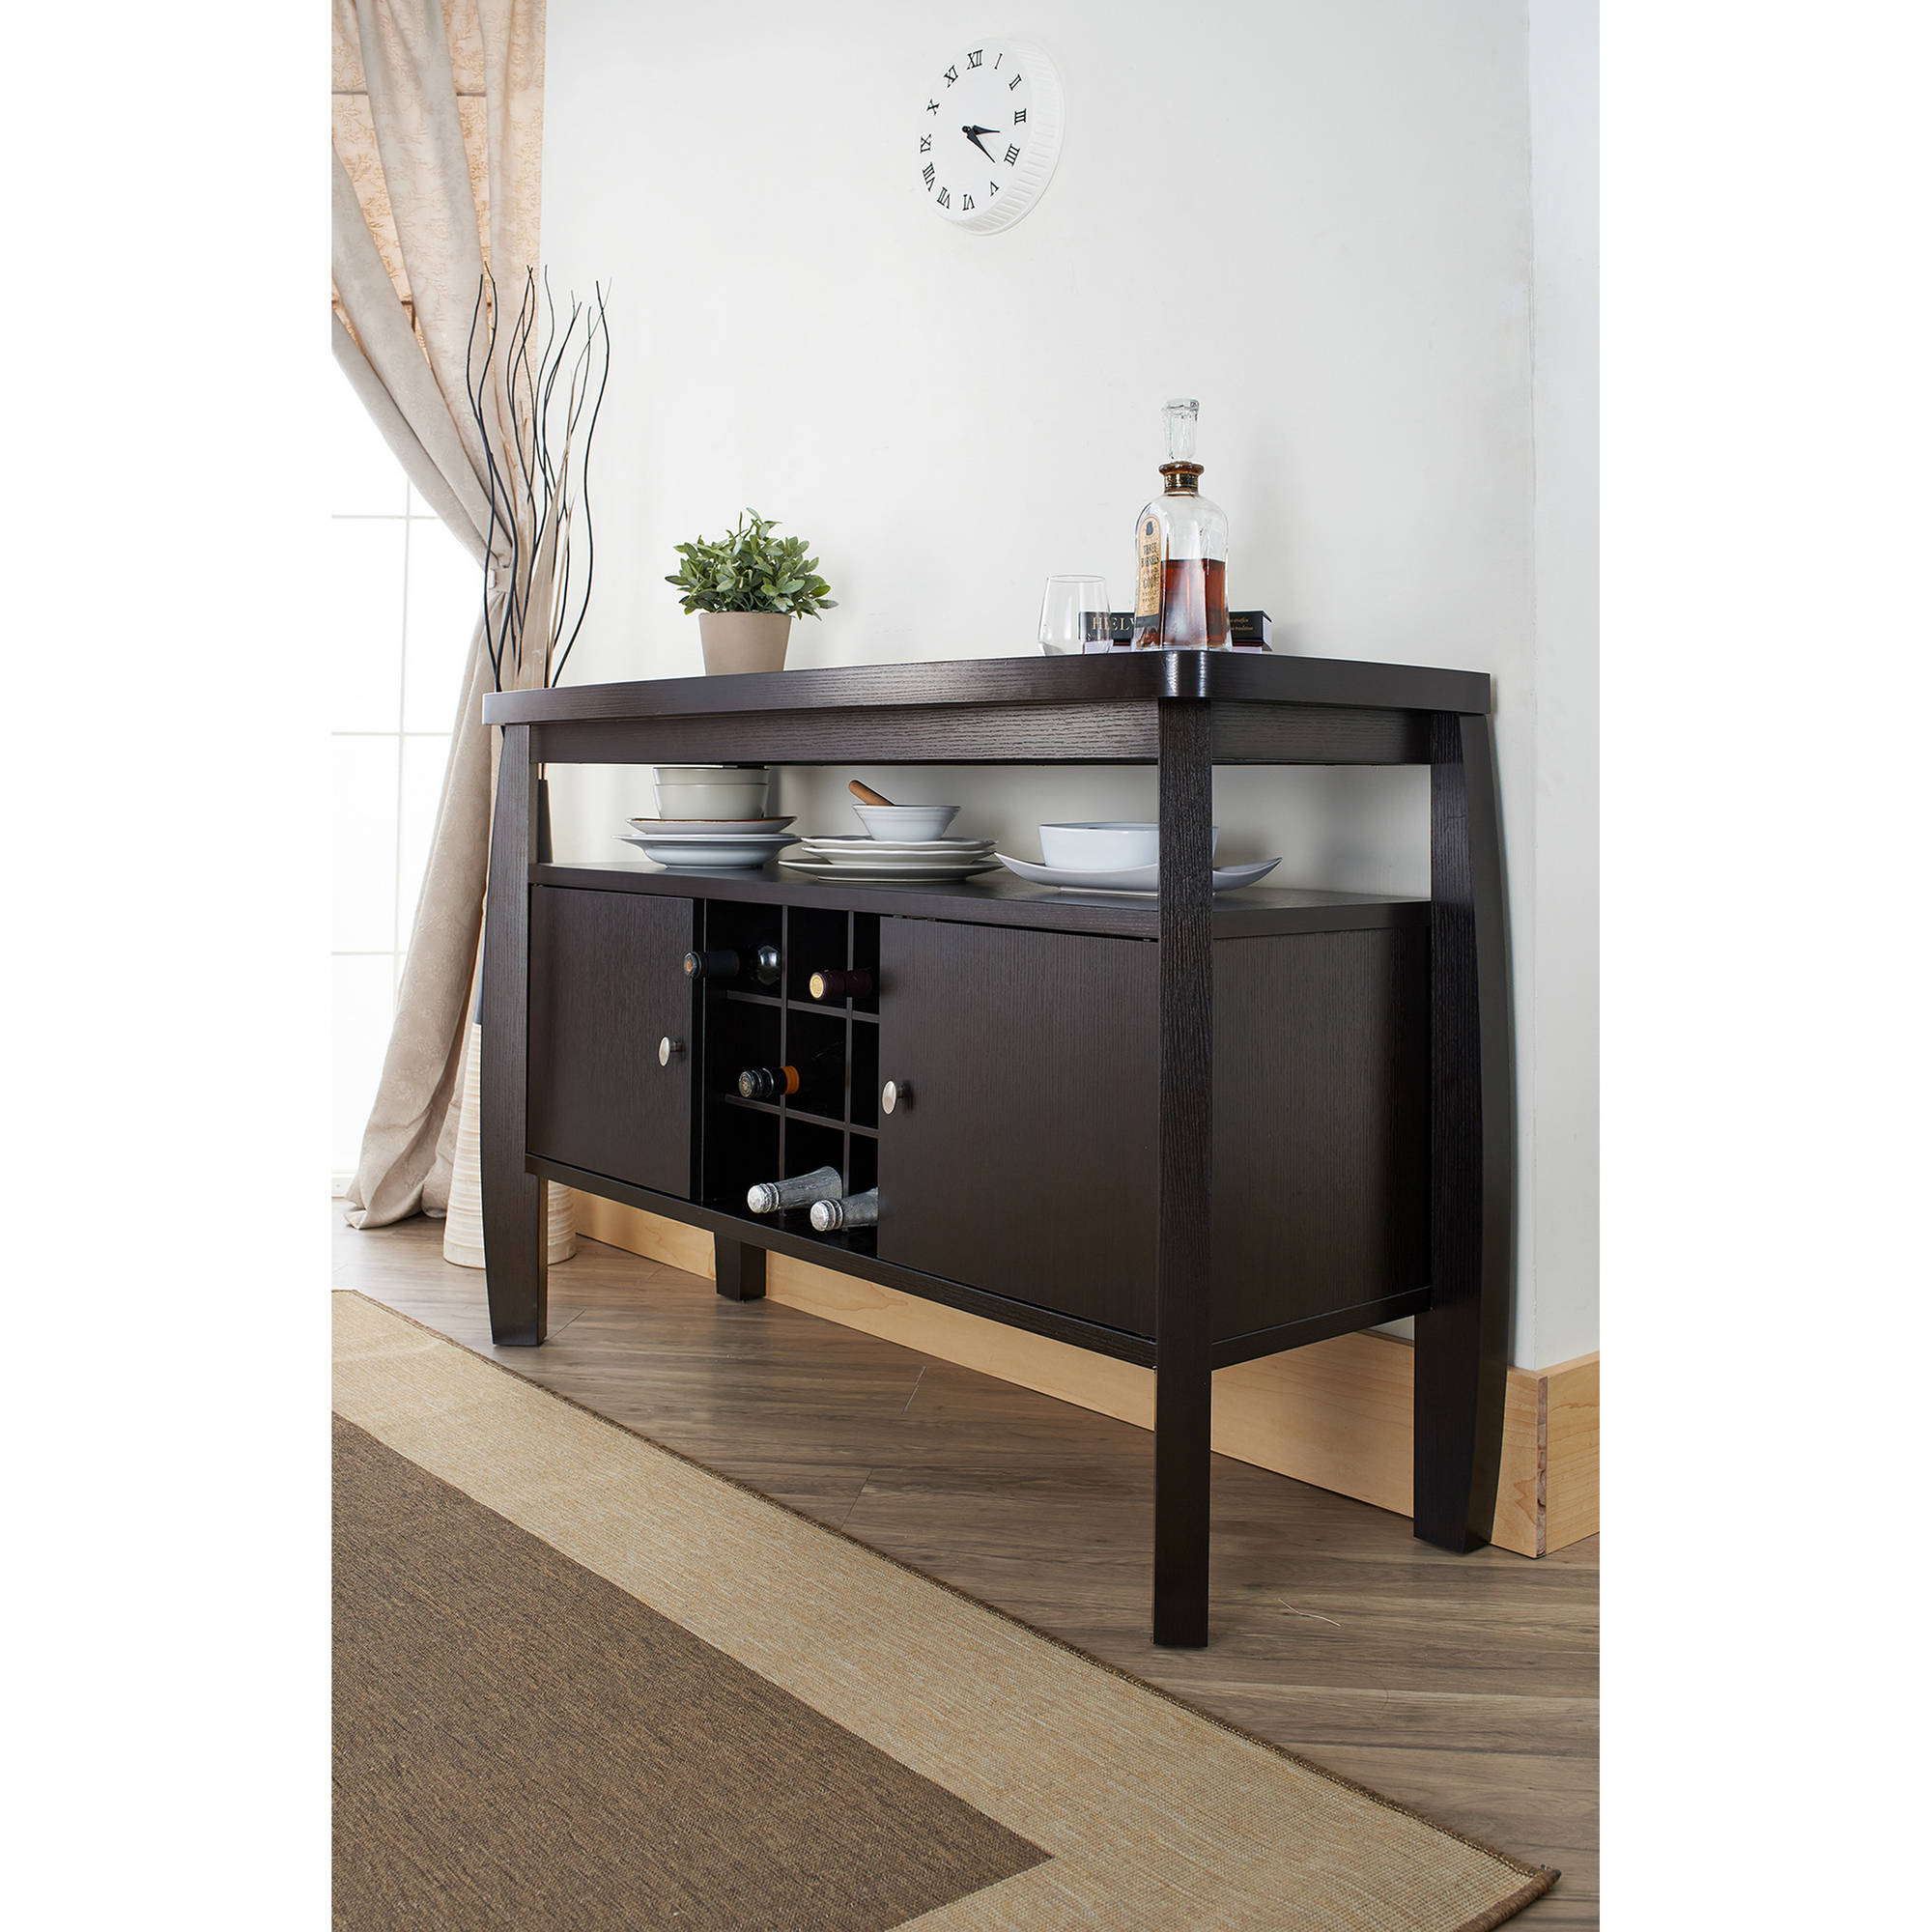 Furniture of America Vera Contemporary Multi-Storage Buffet Table, Espresso by Furniture of America